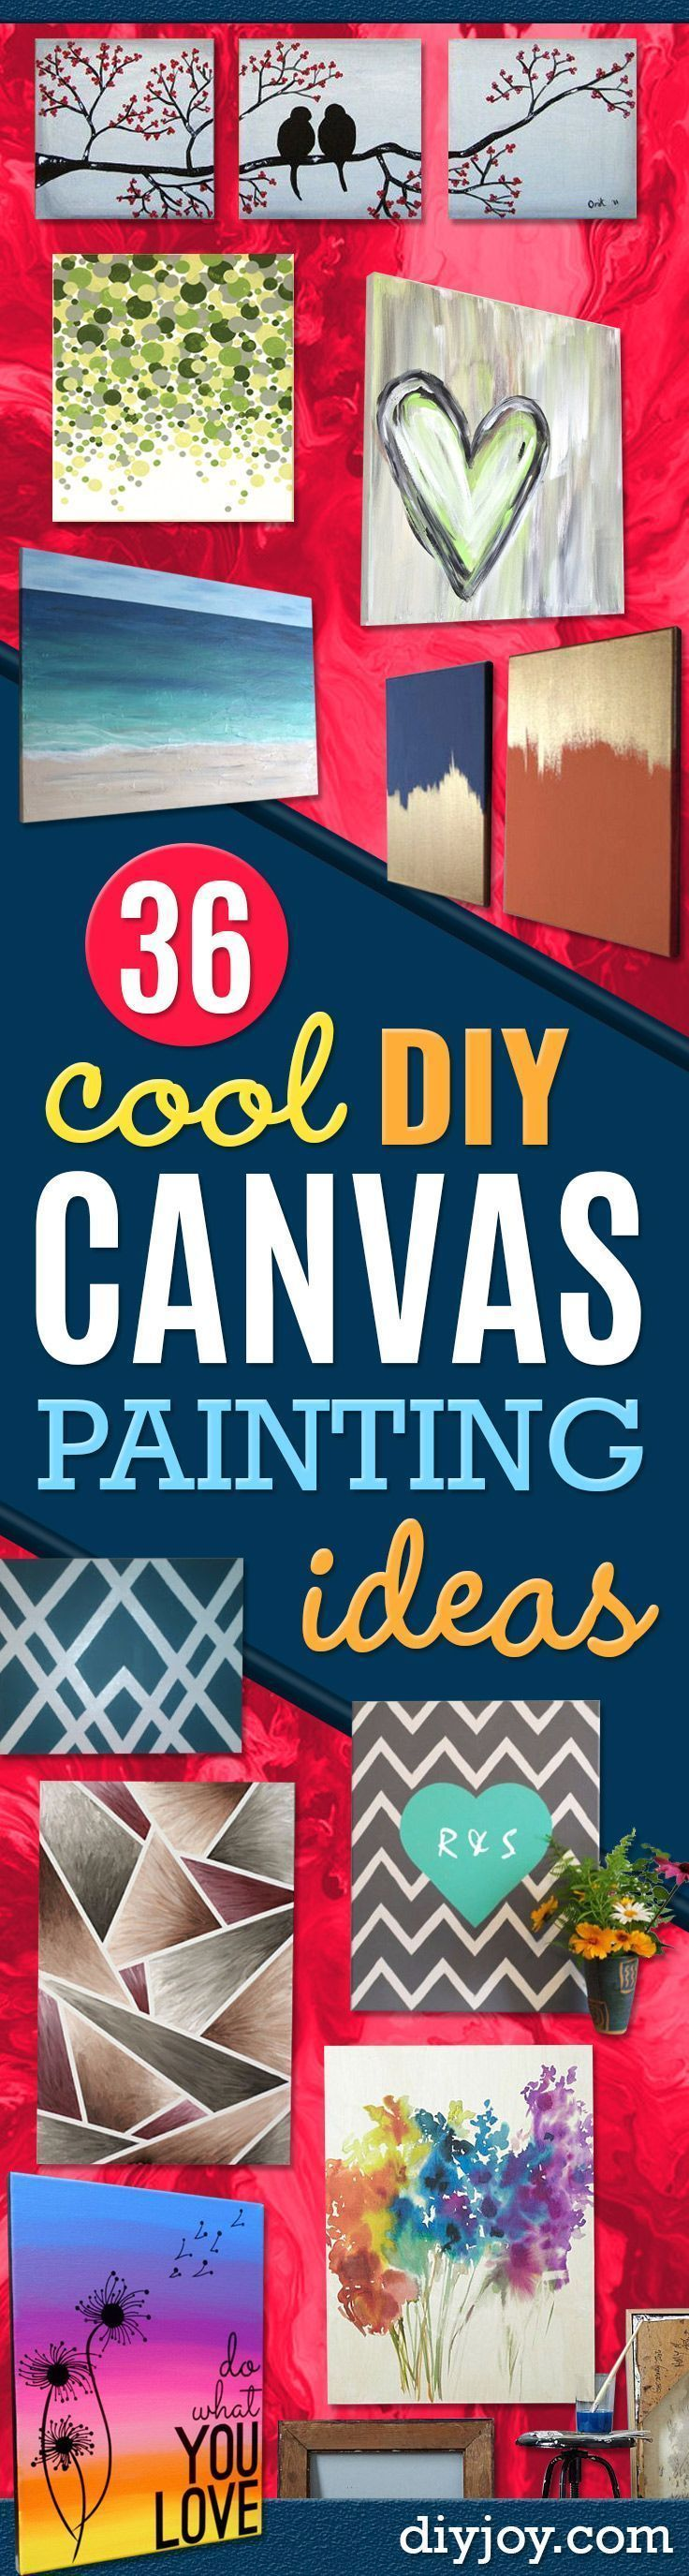 Diy canvas painting ideas cool and easy wall art ideas you can